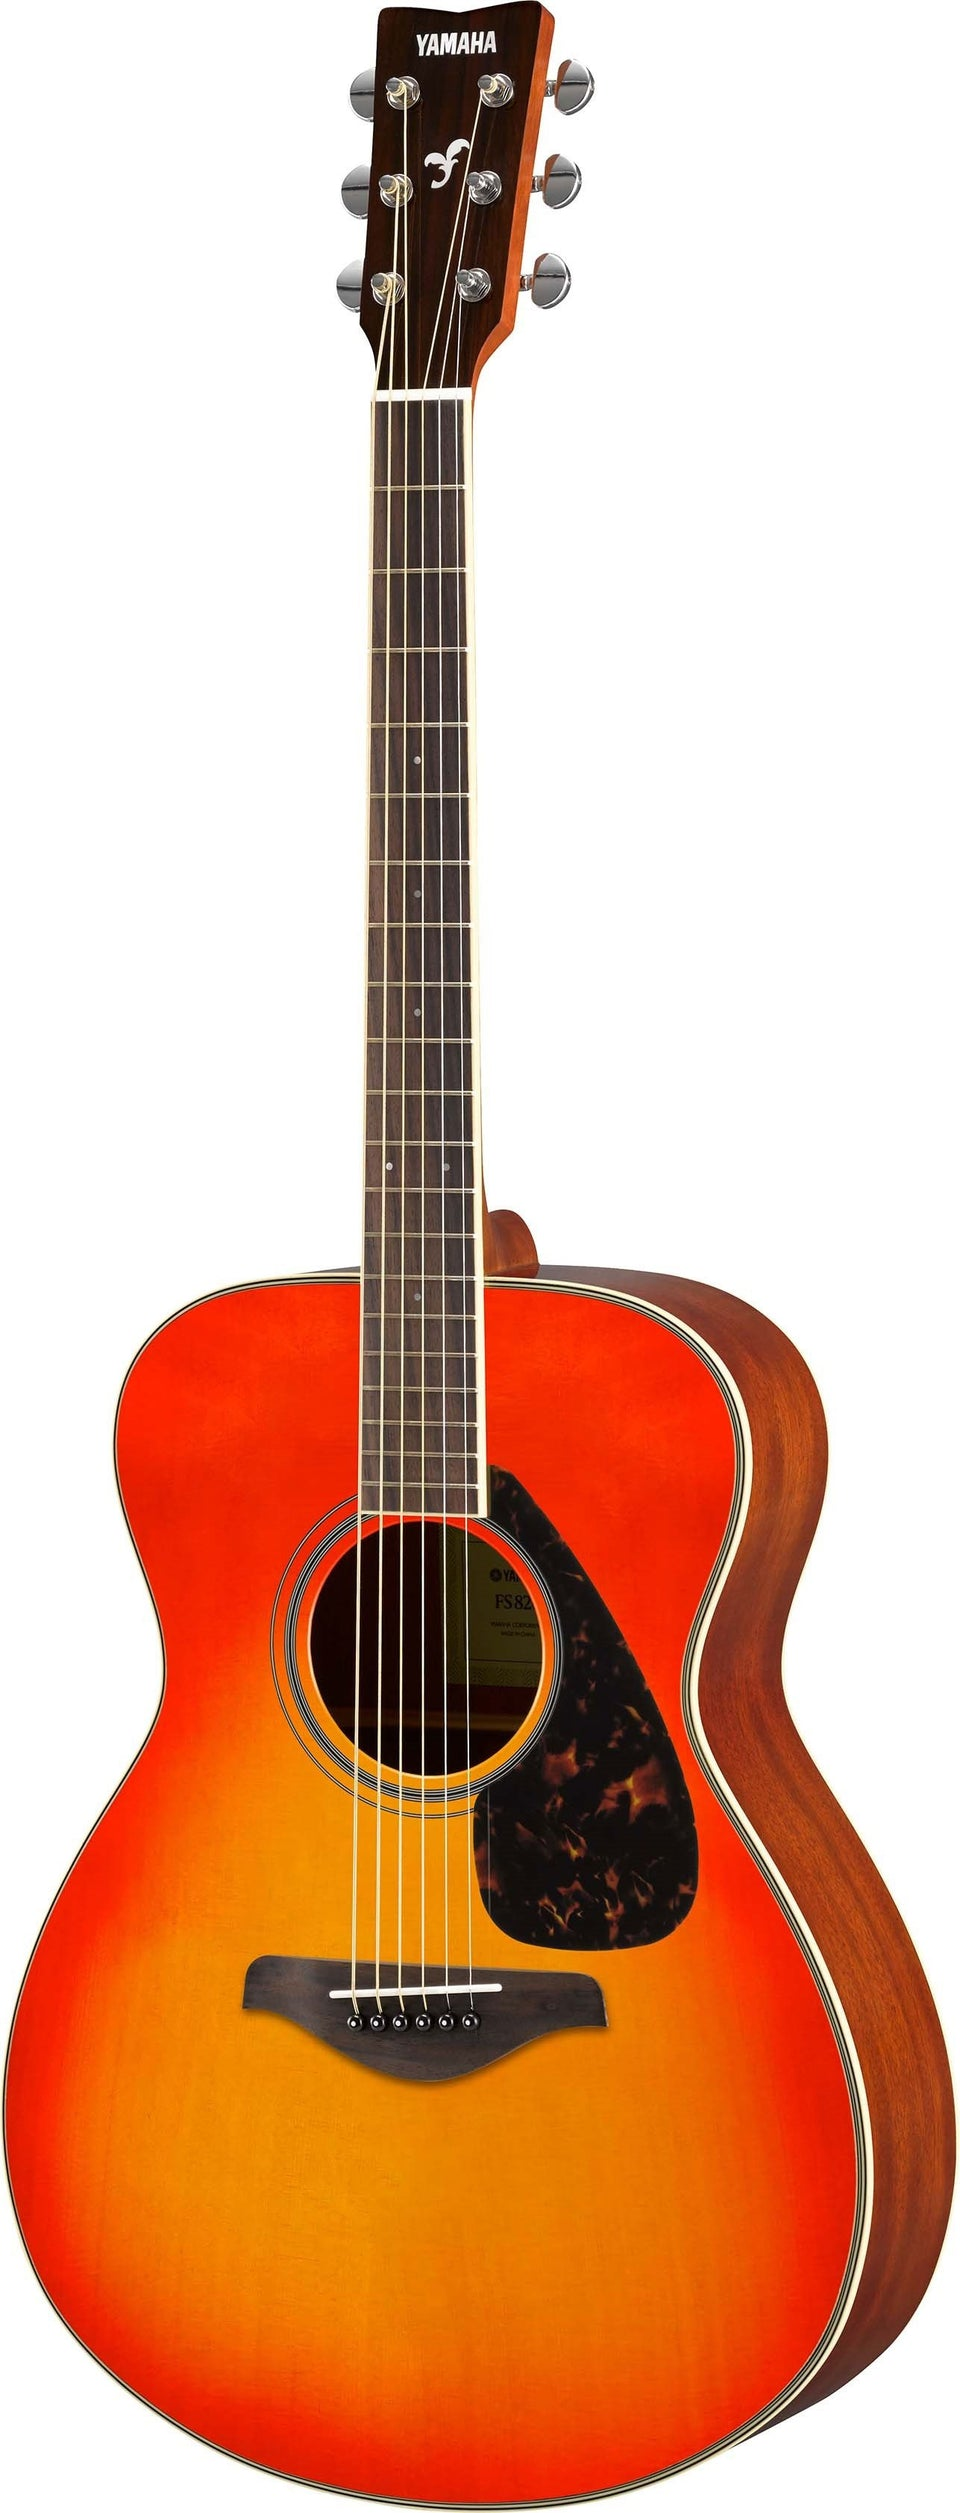 Yamaha FS820 Acoustic Guitar - Autumn Burst